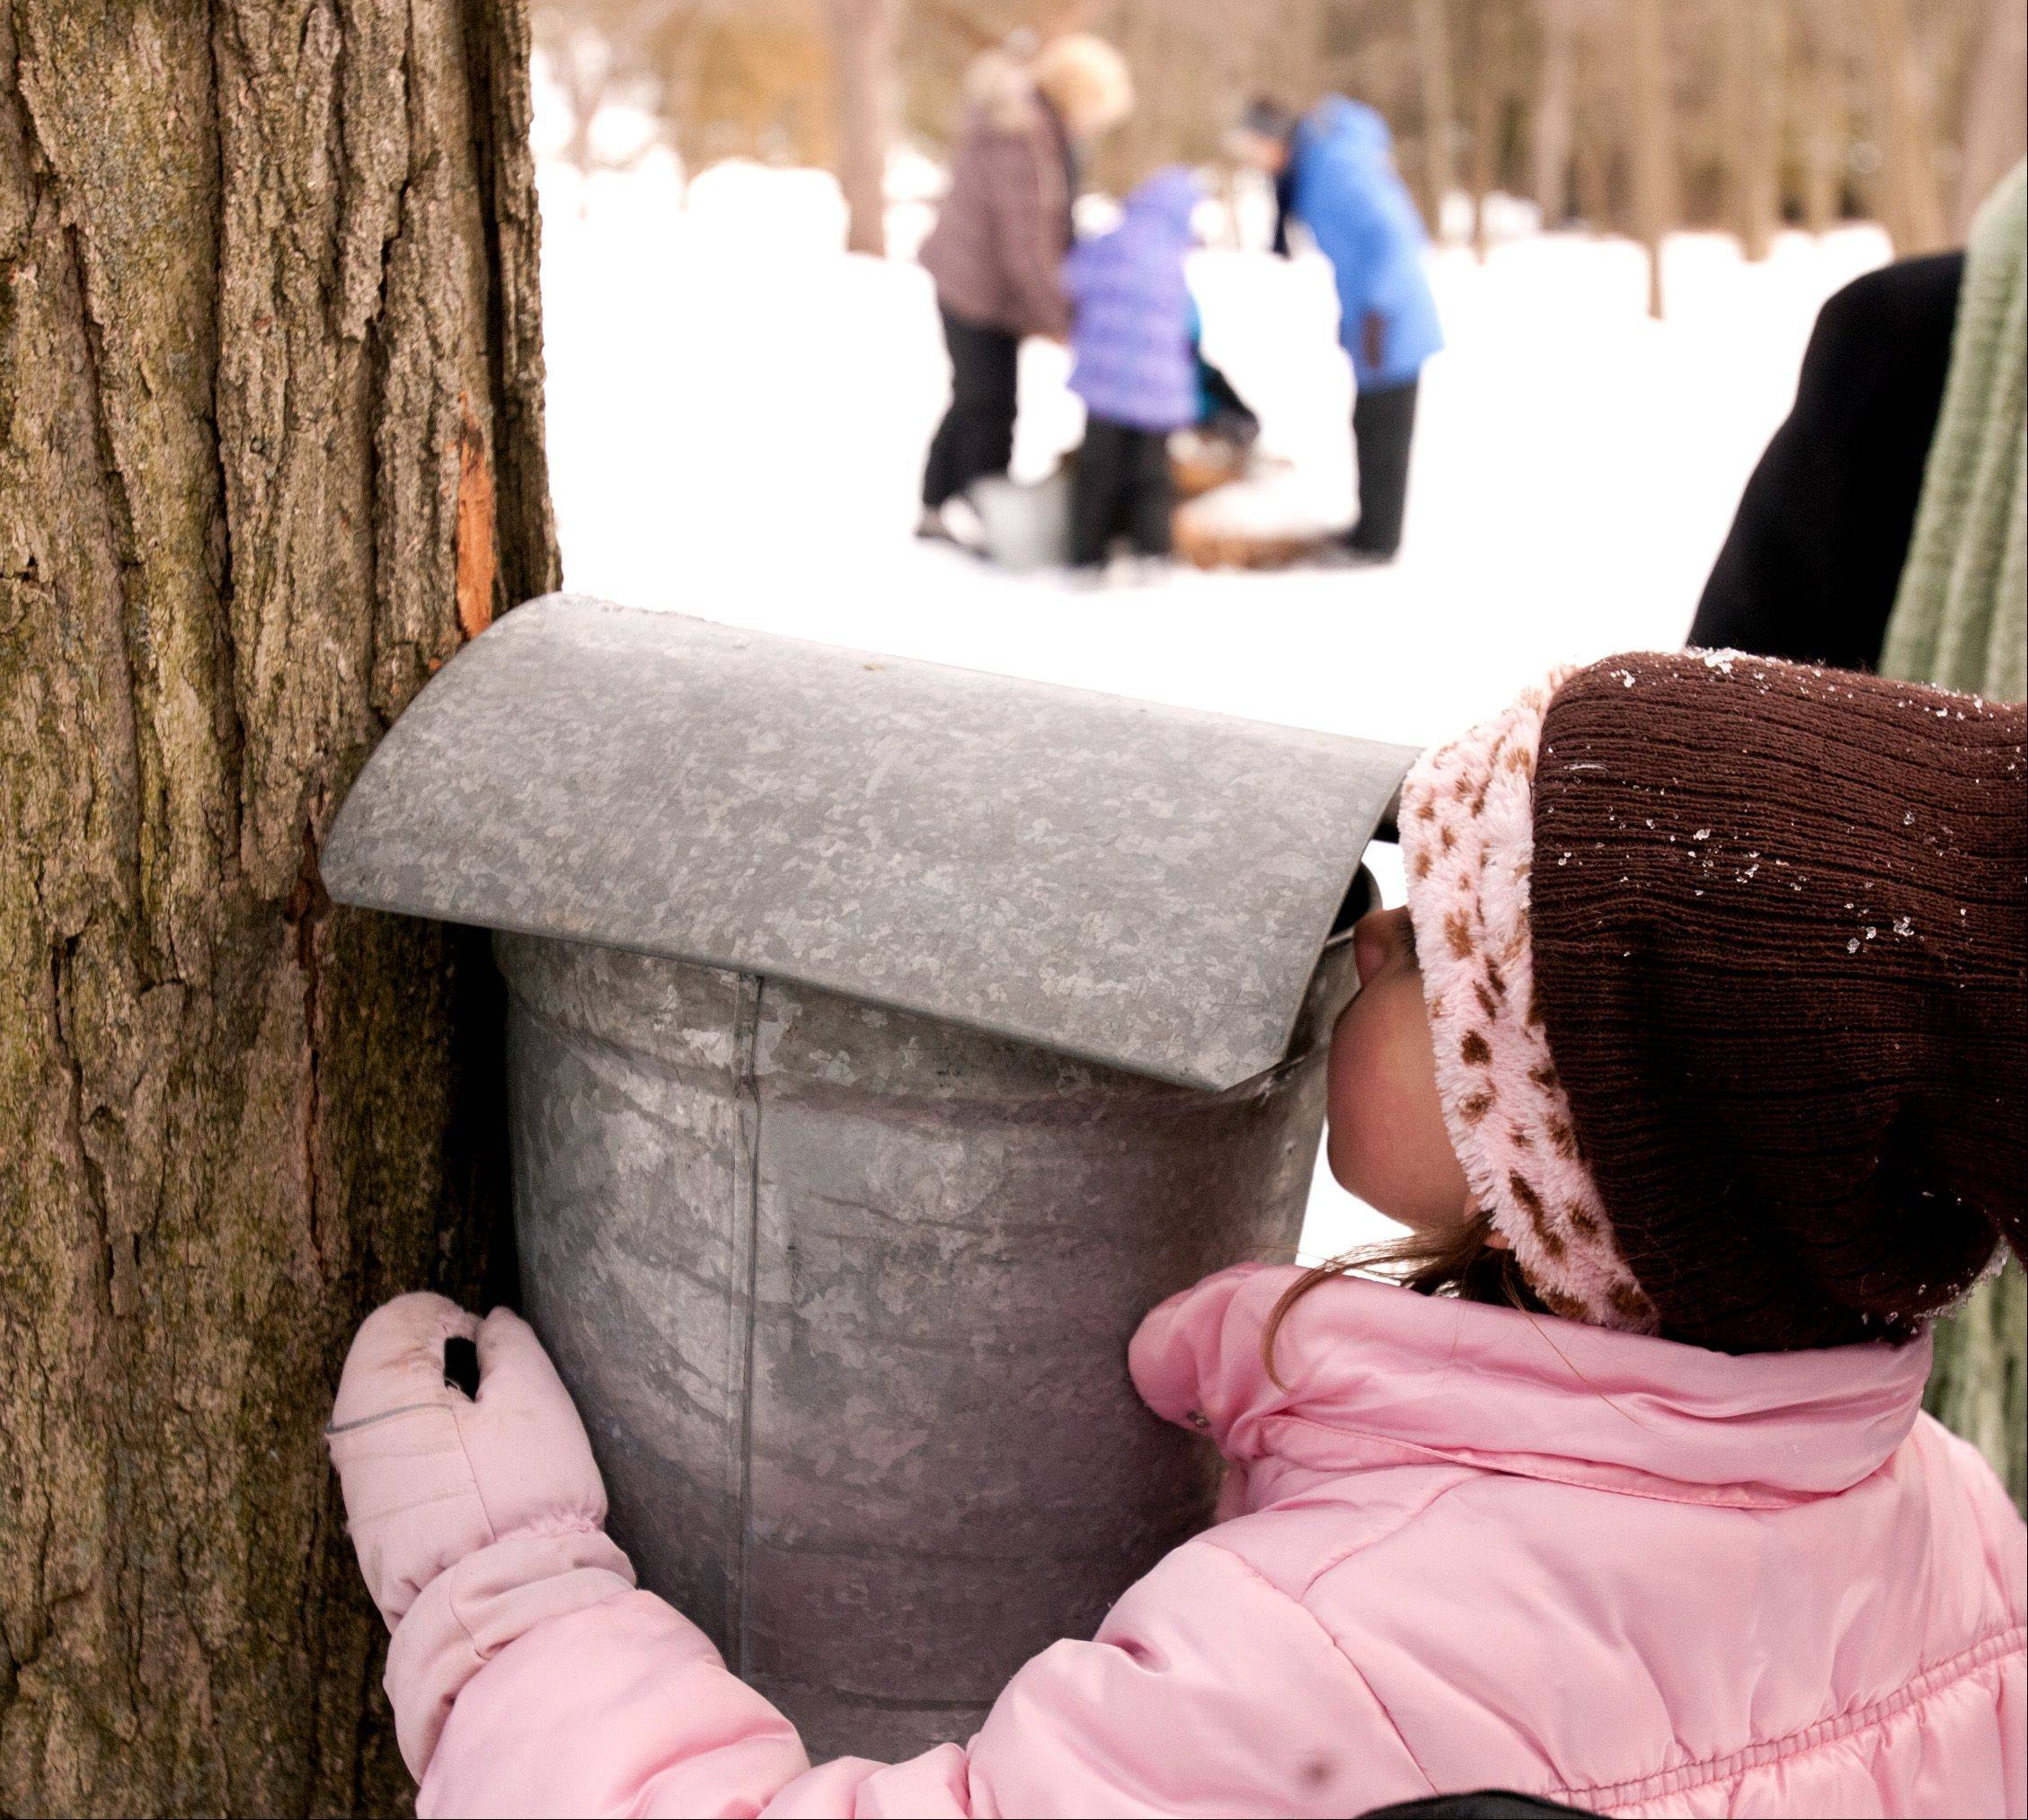 Ellie Pinfo, 5, of Wheaton looks up close at frozen sap during the maple tapping education at the Morton Arboretum.